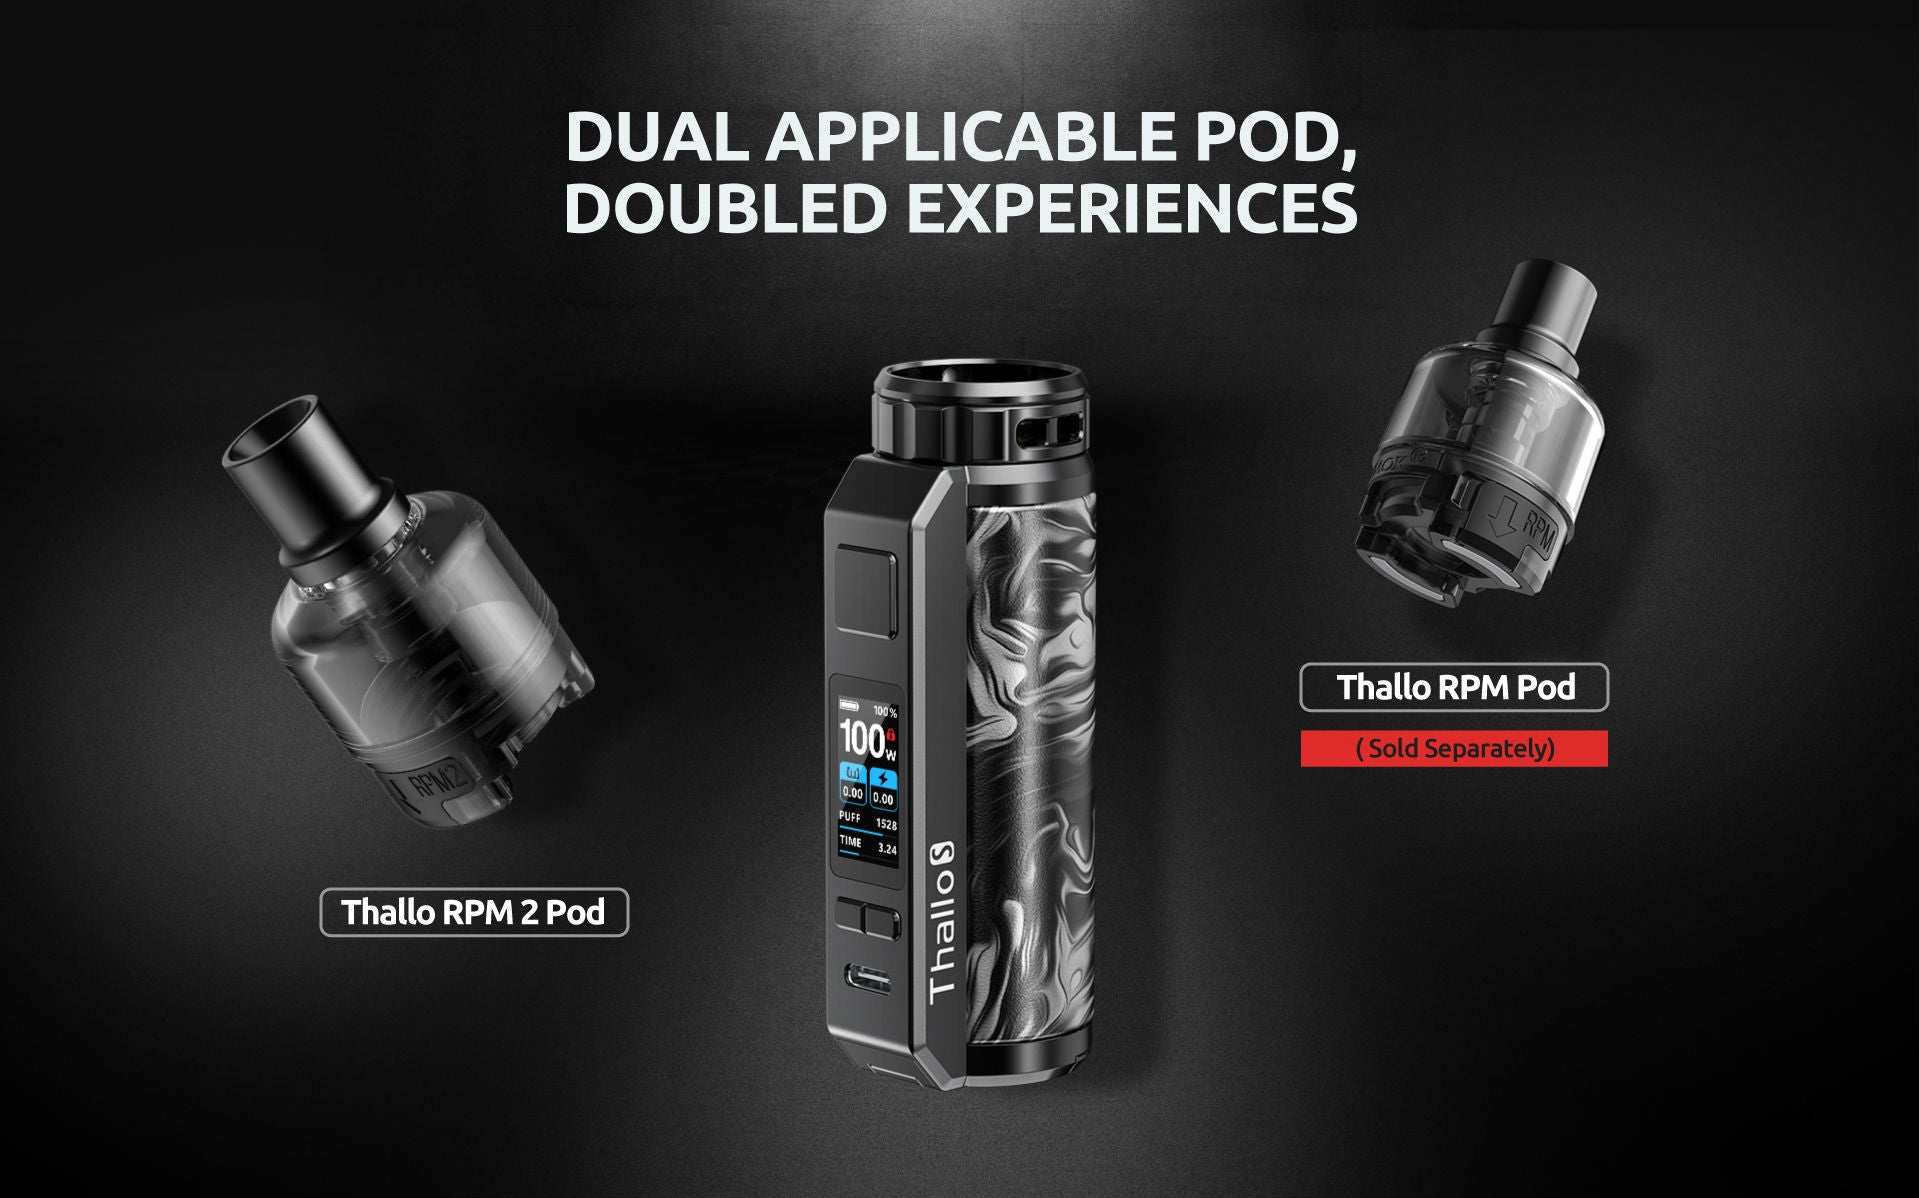 Use either RPM 2 or original RPM coils with compatible pods